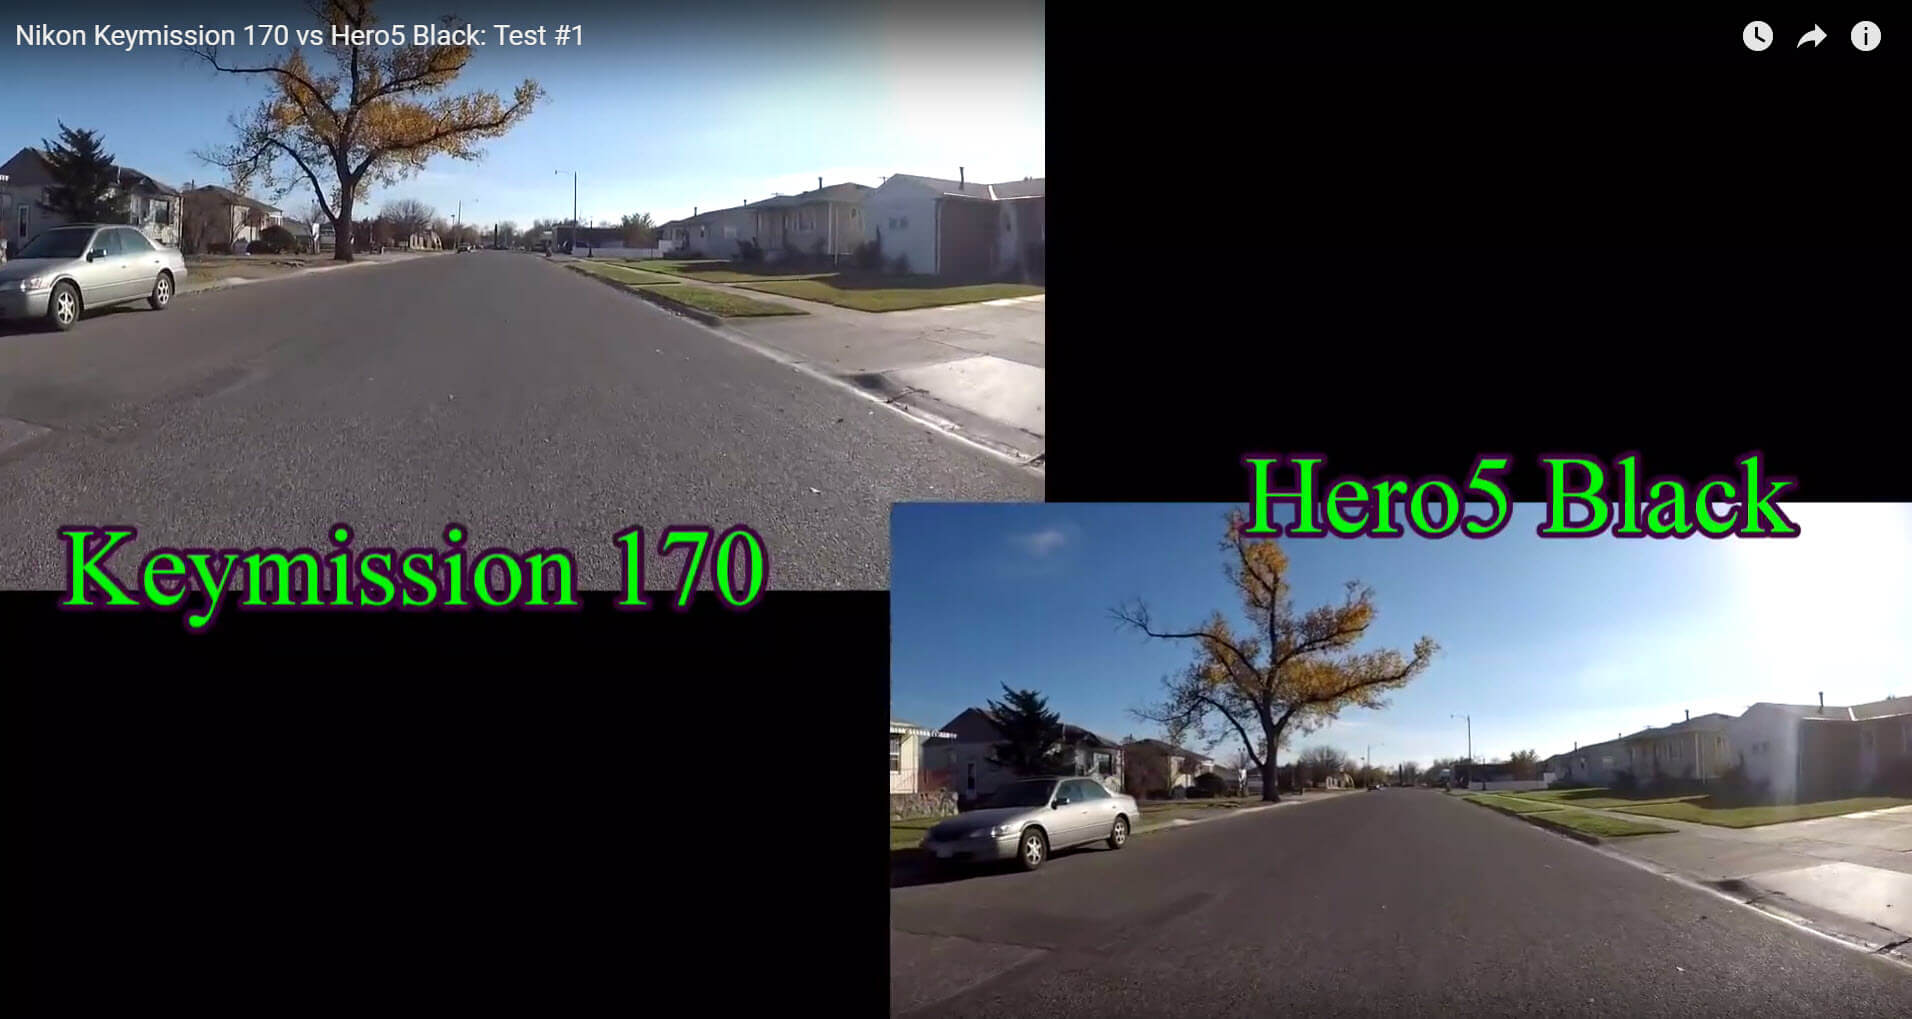 hero5 balck keymission170 test